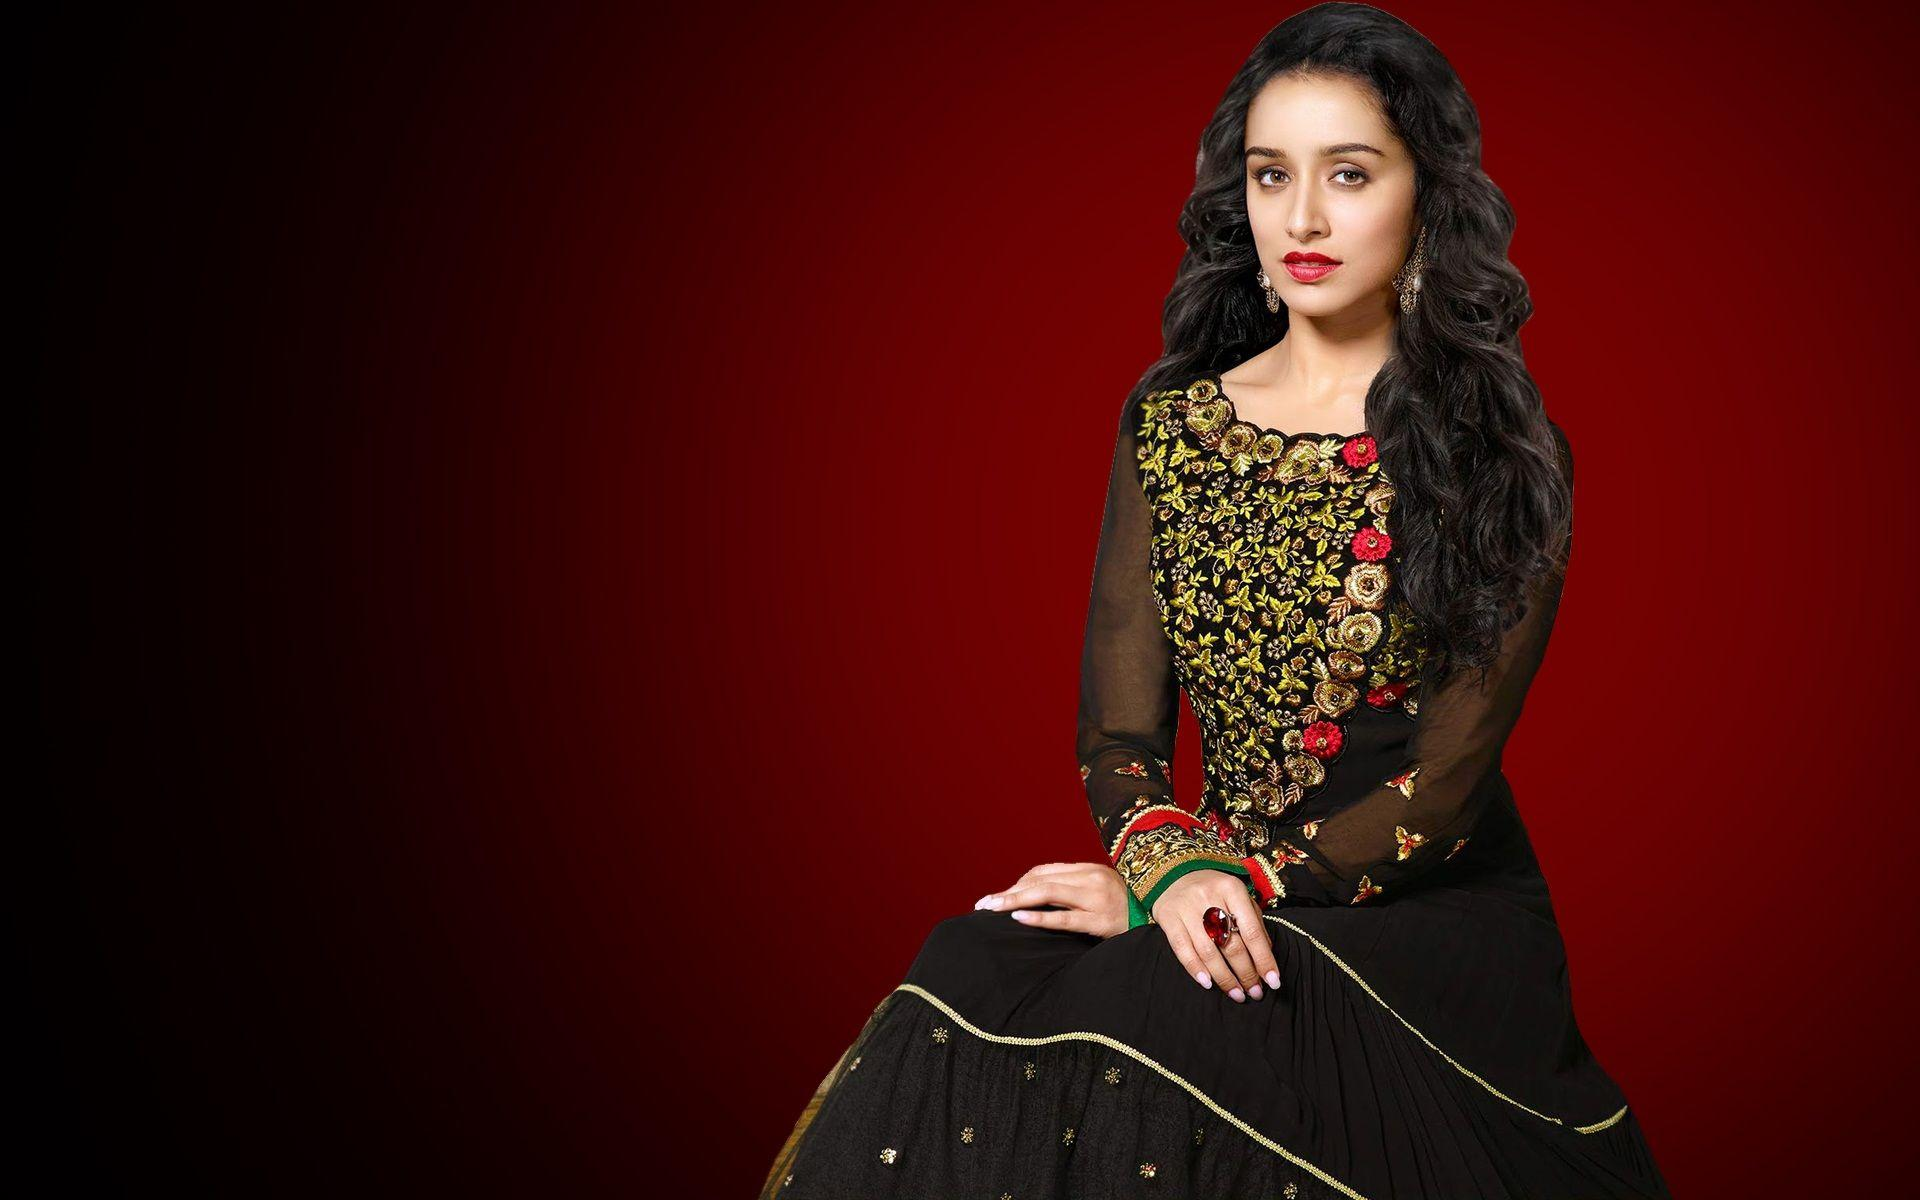 shraddha_kapoor_wallpaper_97338023